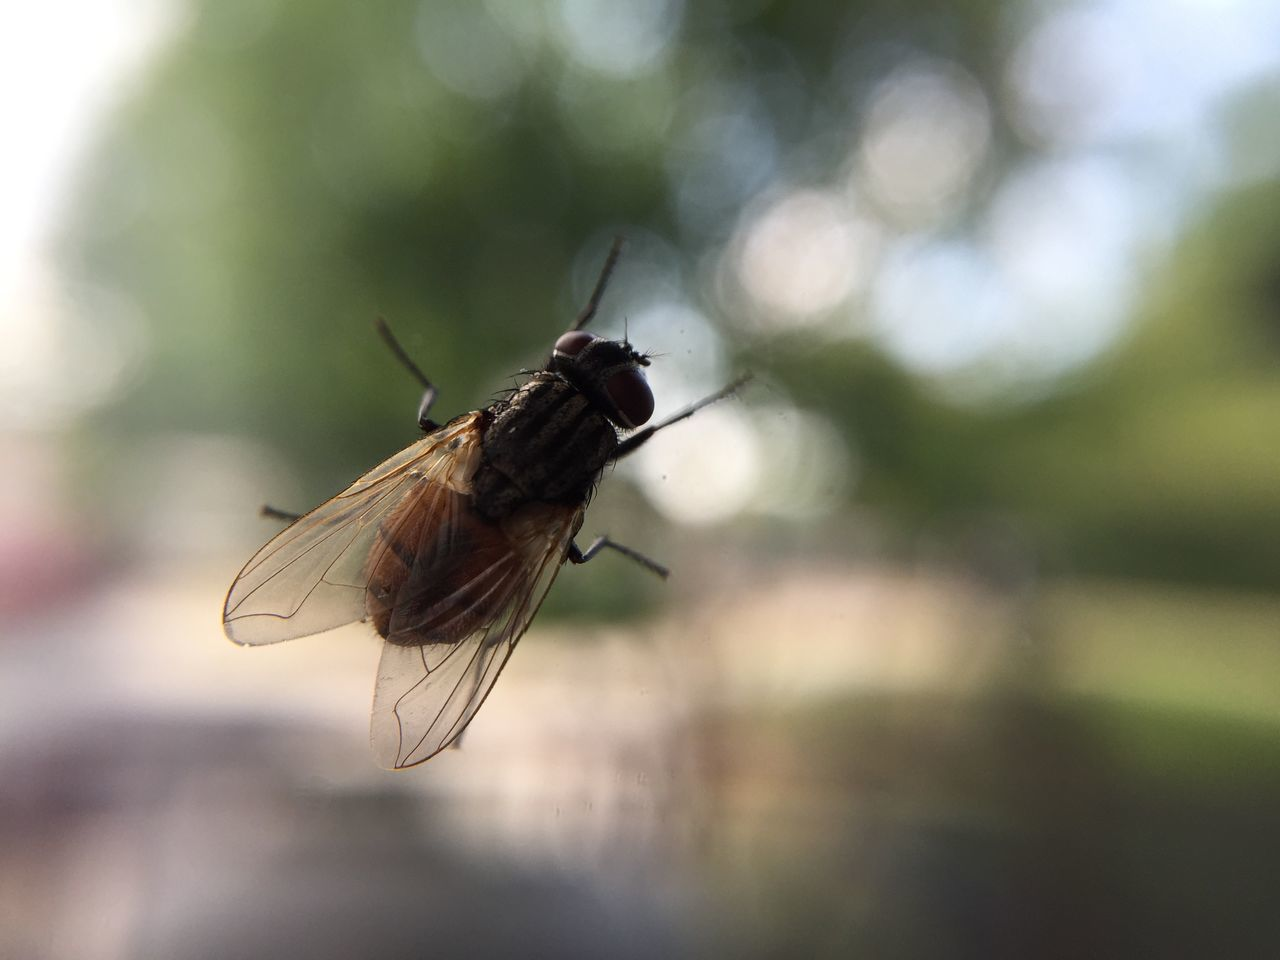 insect, close-up, one animal, animal themes, no people, nature, animals in the wild, outdoors, day